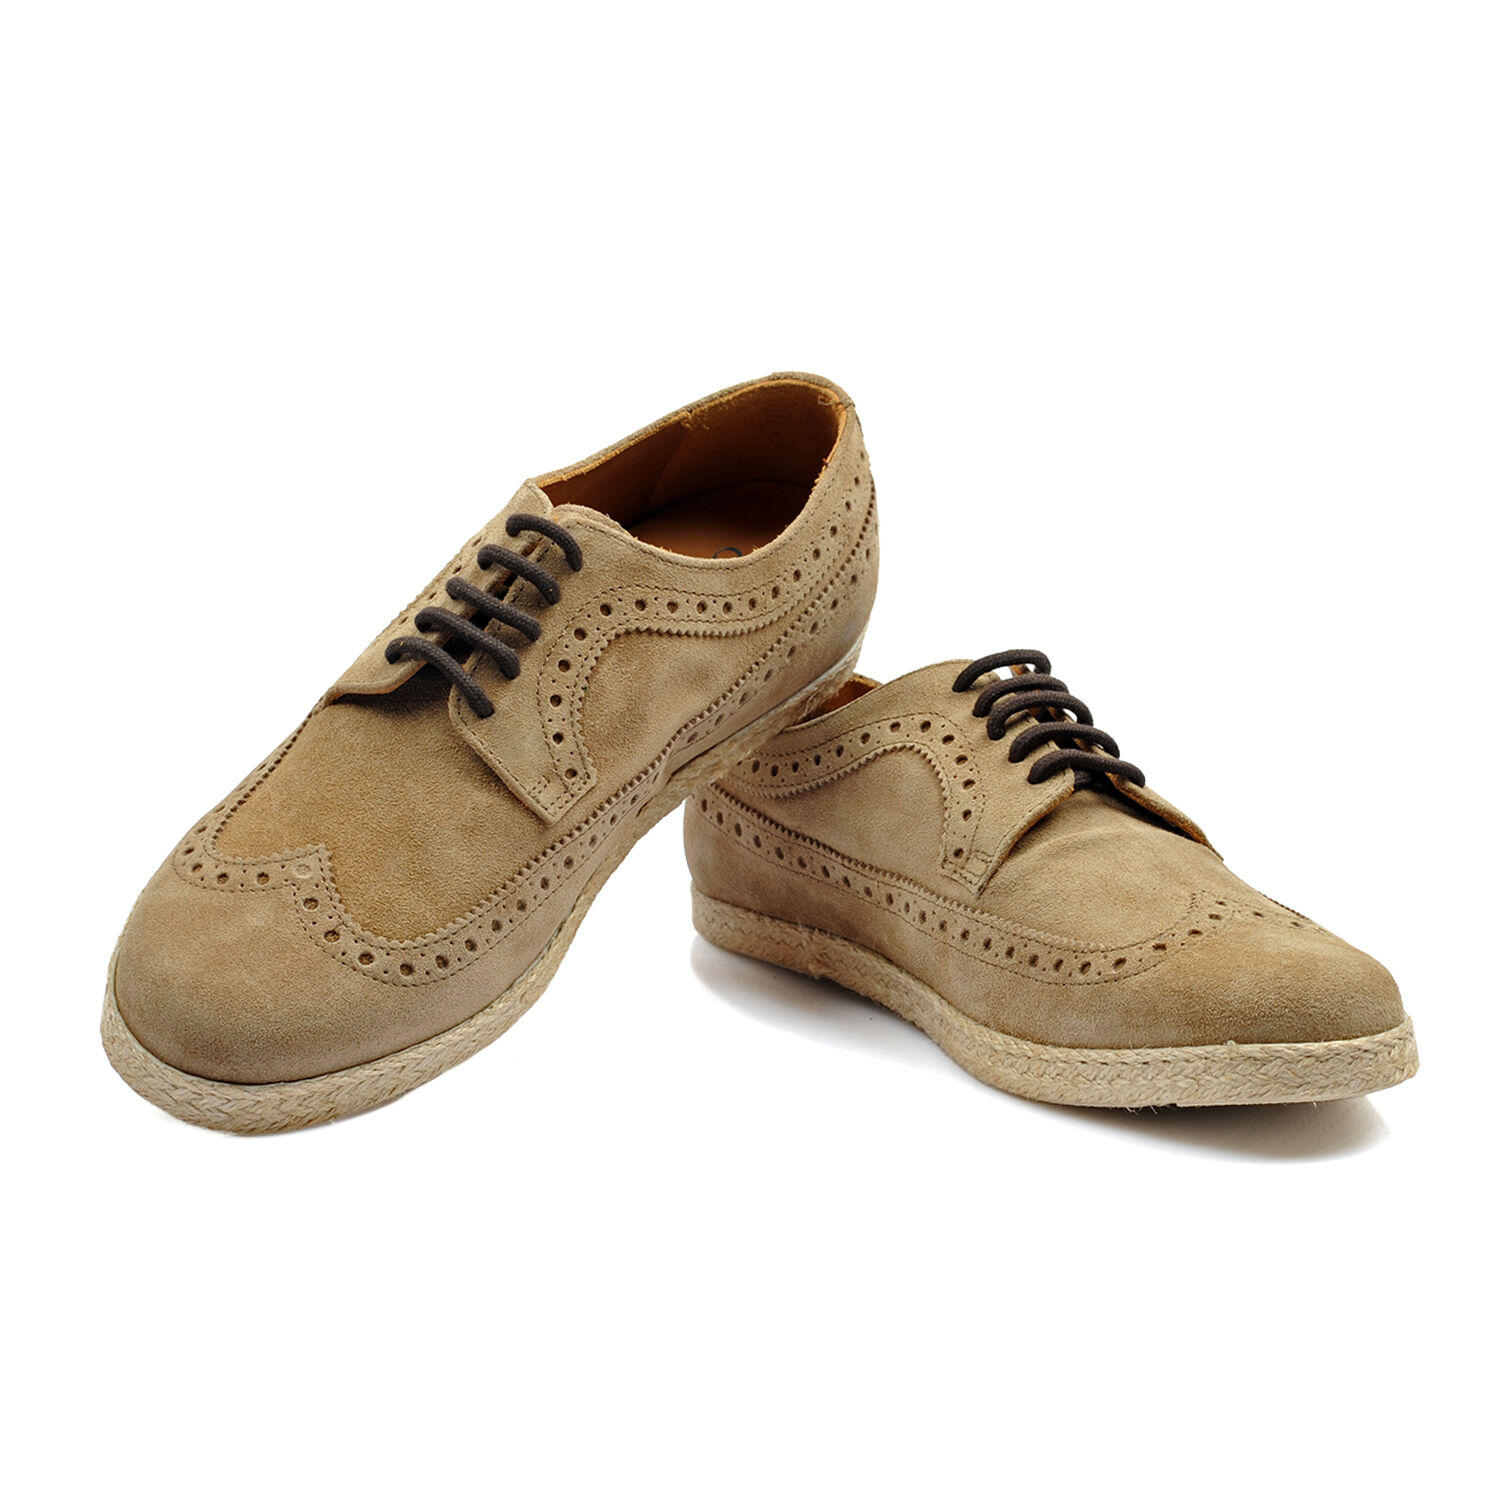 Canali Beige Suade Oxford Shoe Size US 8 NEW CSH43